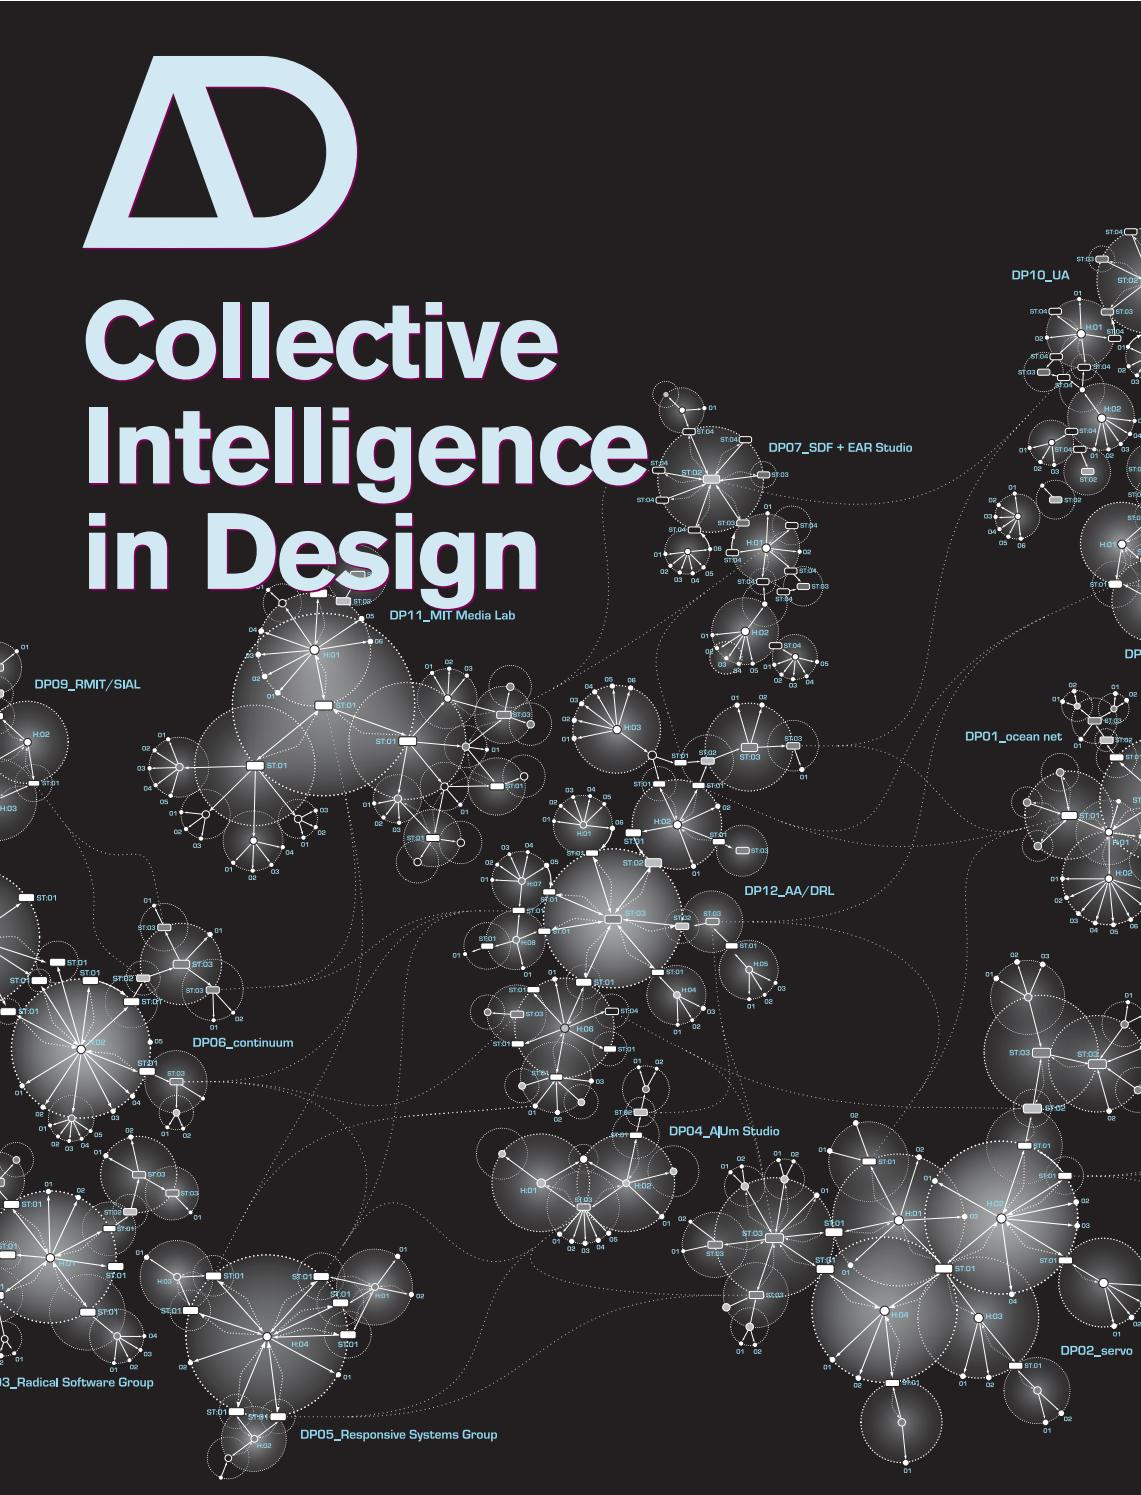 Collective Intelligence In Design By Aung Myat Kyaw Issuu Ezio Reed Relay Board Partially Blank Schematic